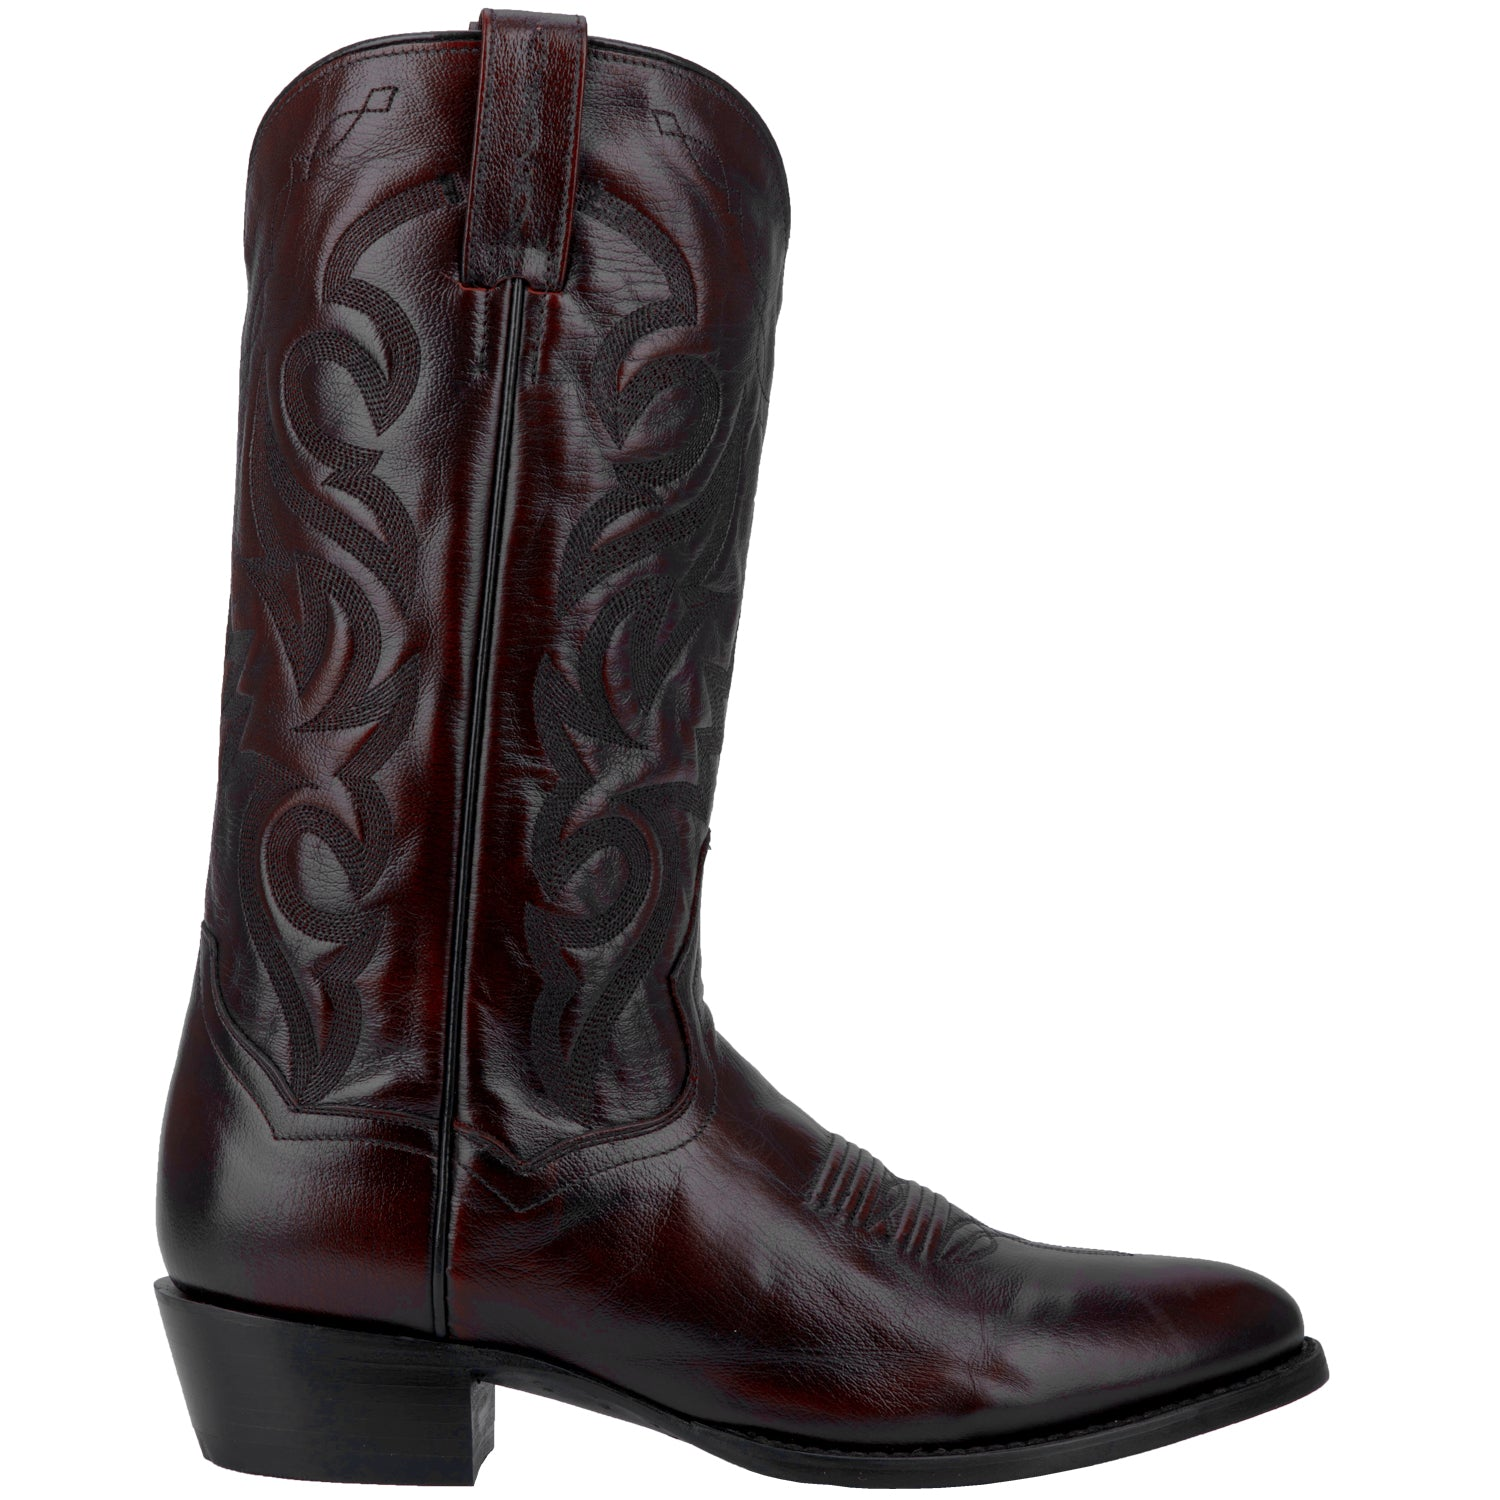 MILWAUKEE LEATHER BOOT | Dan Post Boots